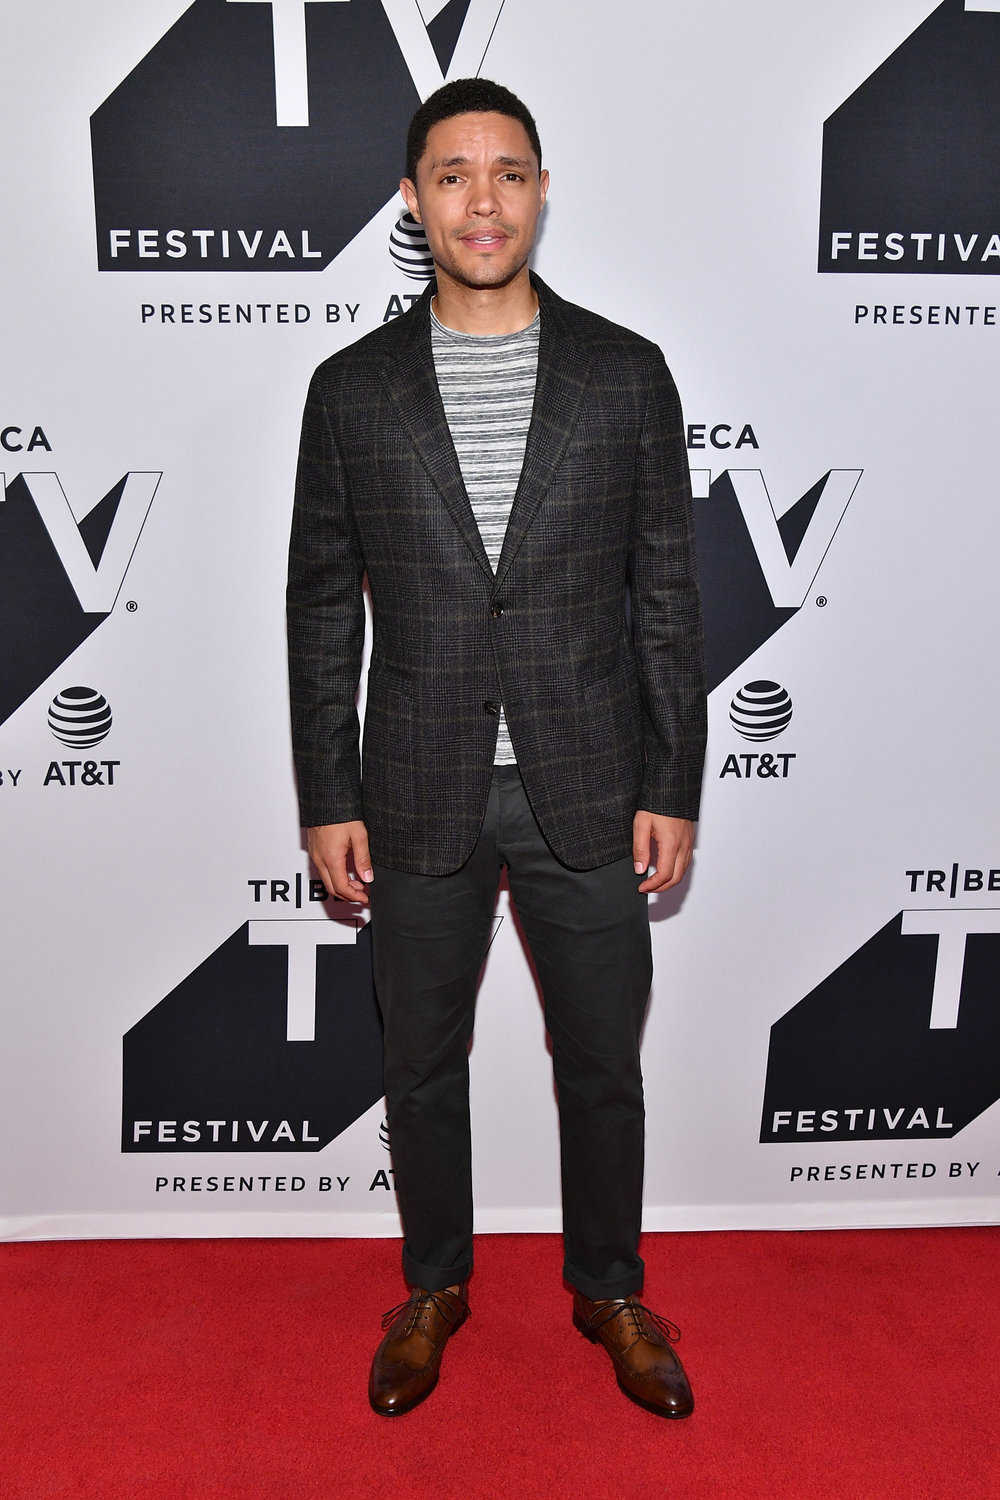 Trevor Noah attends the Tribeca TV Festival conversation with Trevor Noah and the writers of the Daily Show at Cinepolis Chelsea on September 24, 2017 in New York City. (Photo by Dia Dipasupil.Getty Images for Tr.jpg